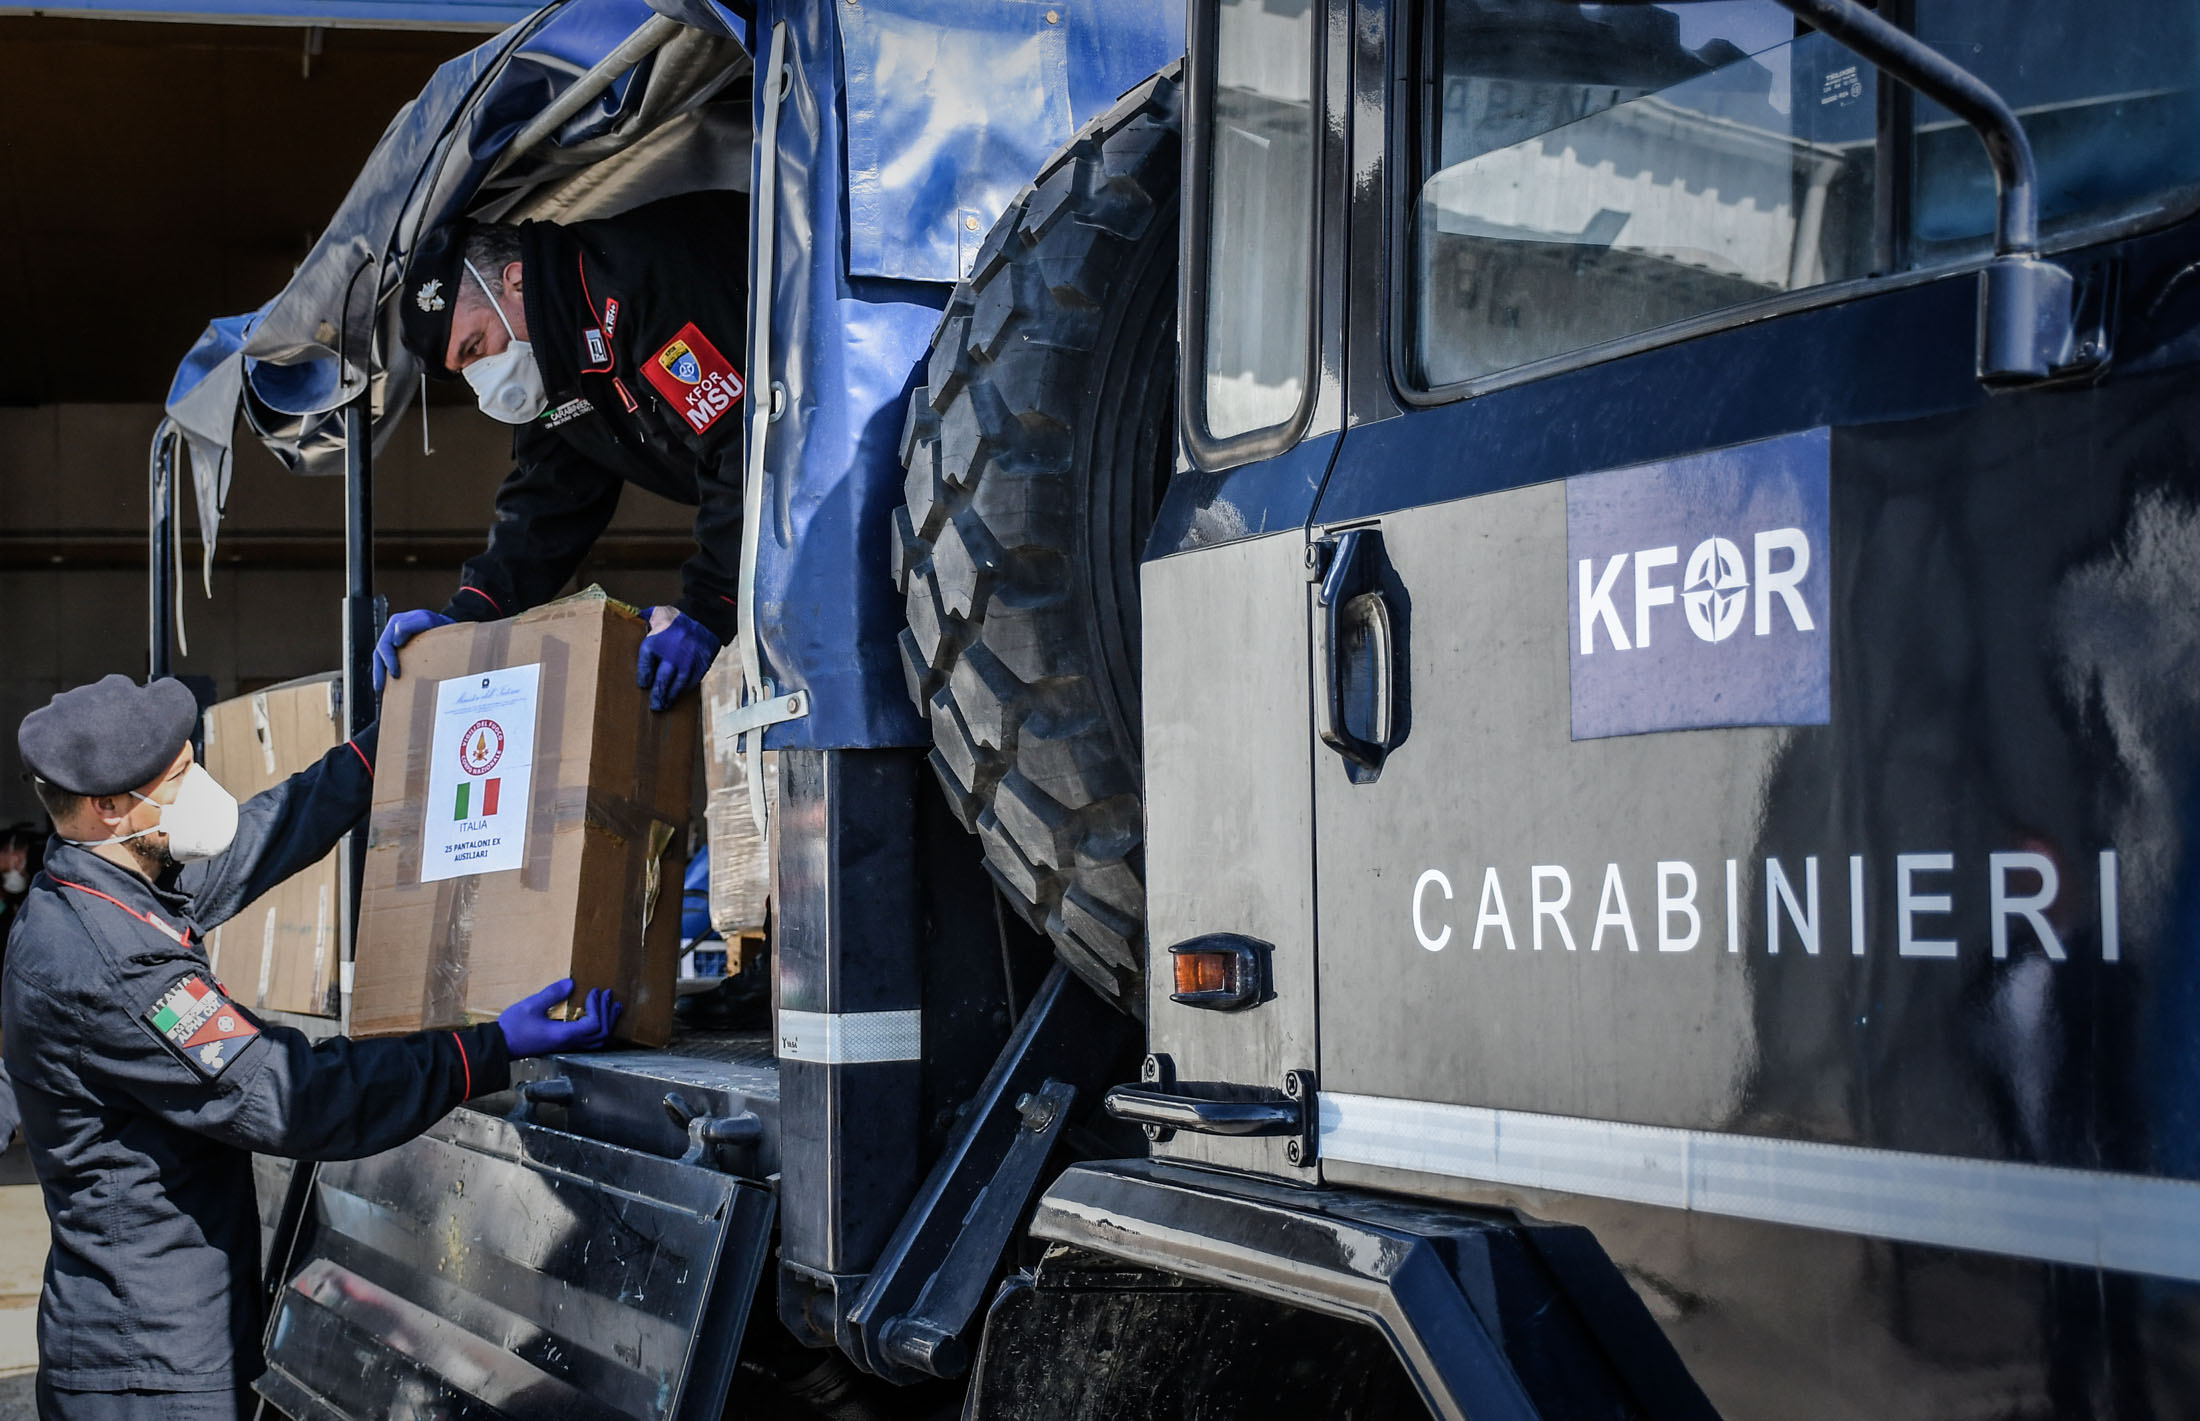 Photo: KFOR providing assistance to local communities in Kosovo to help fight he COVID-19 pandemic Credit: NATO